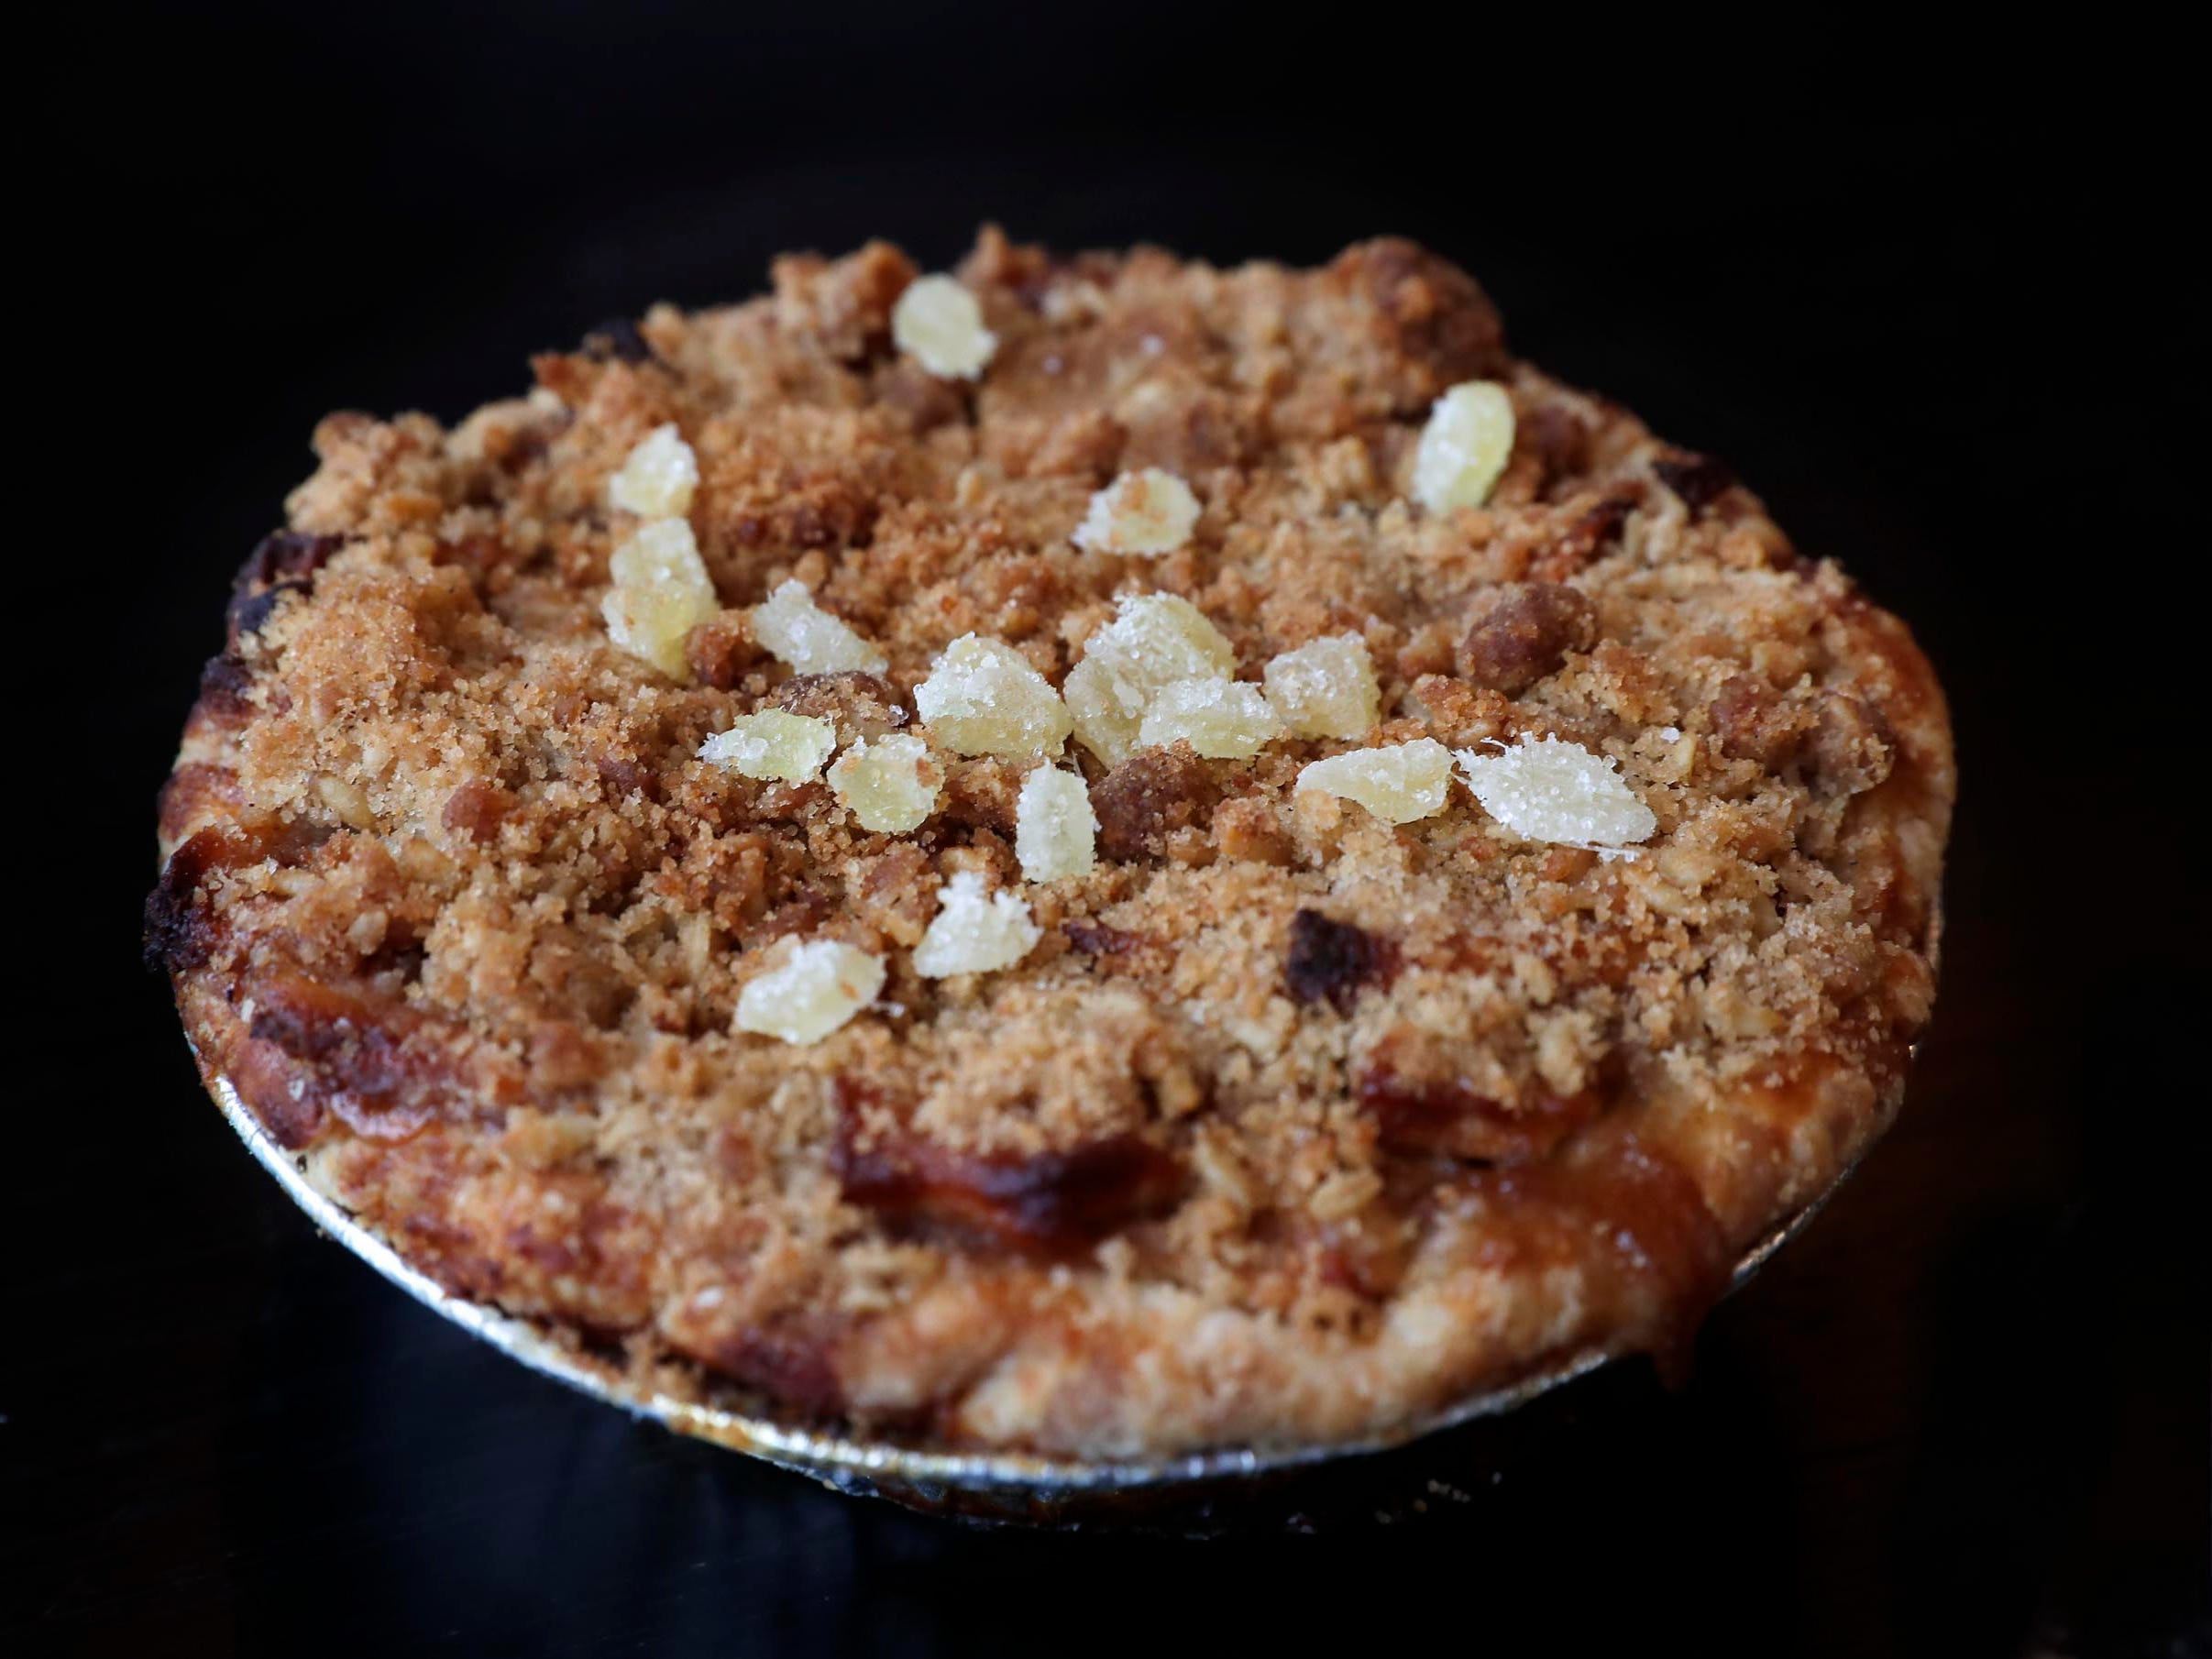 Apple ginger pie is among the sweeter offerings at  SmallPie.